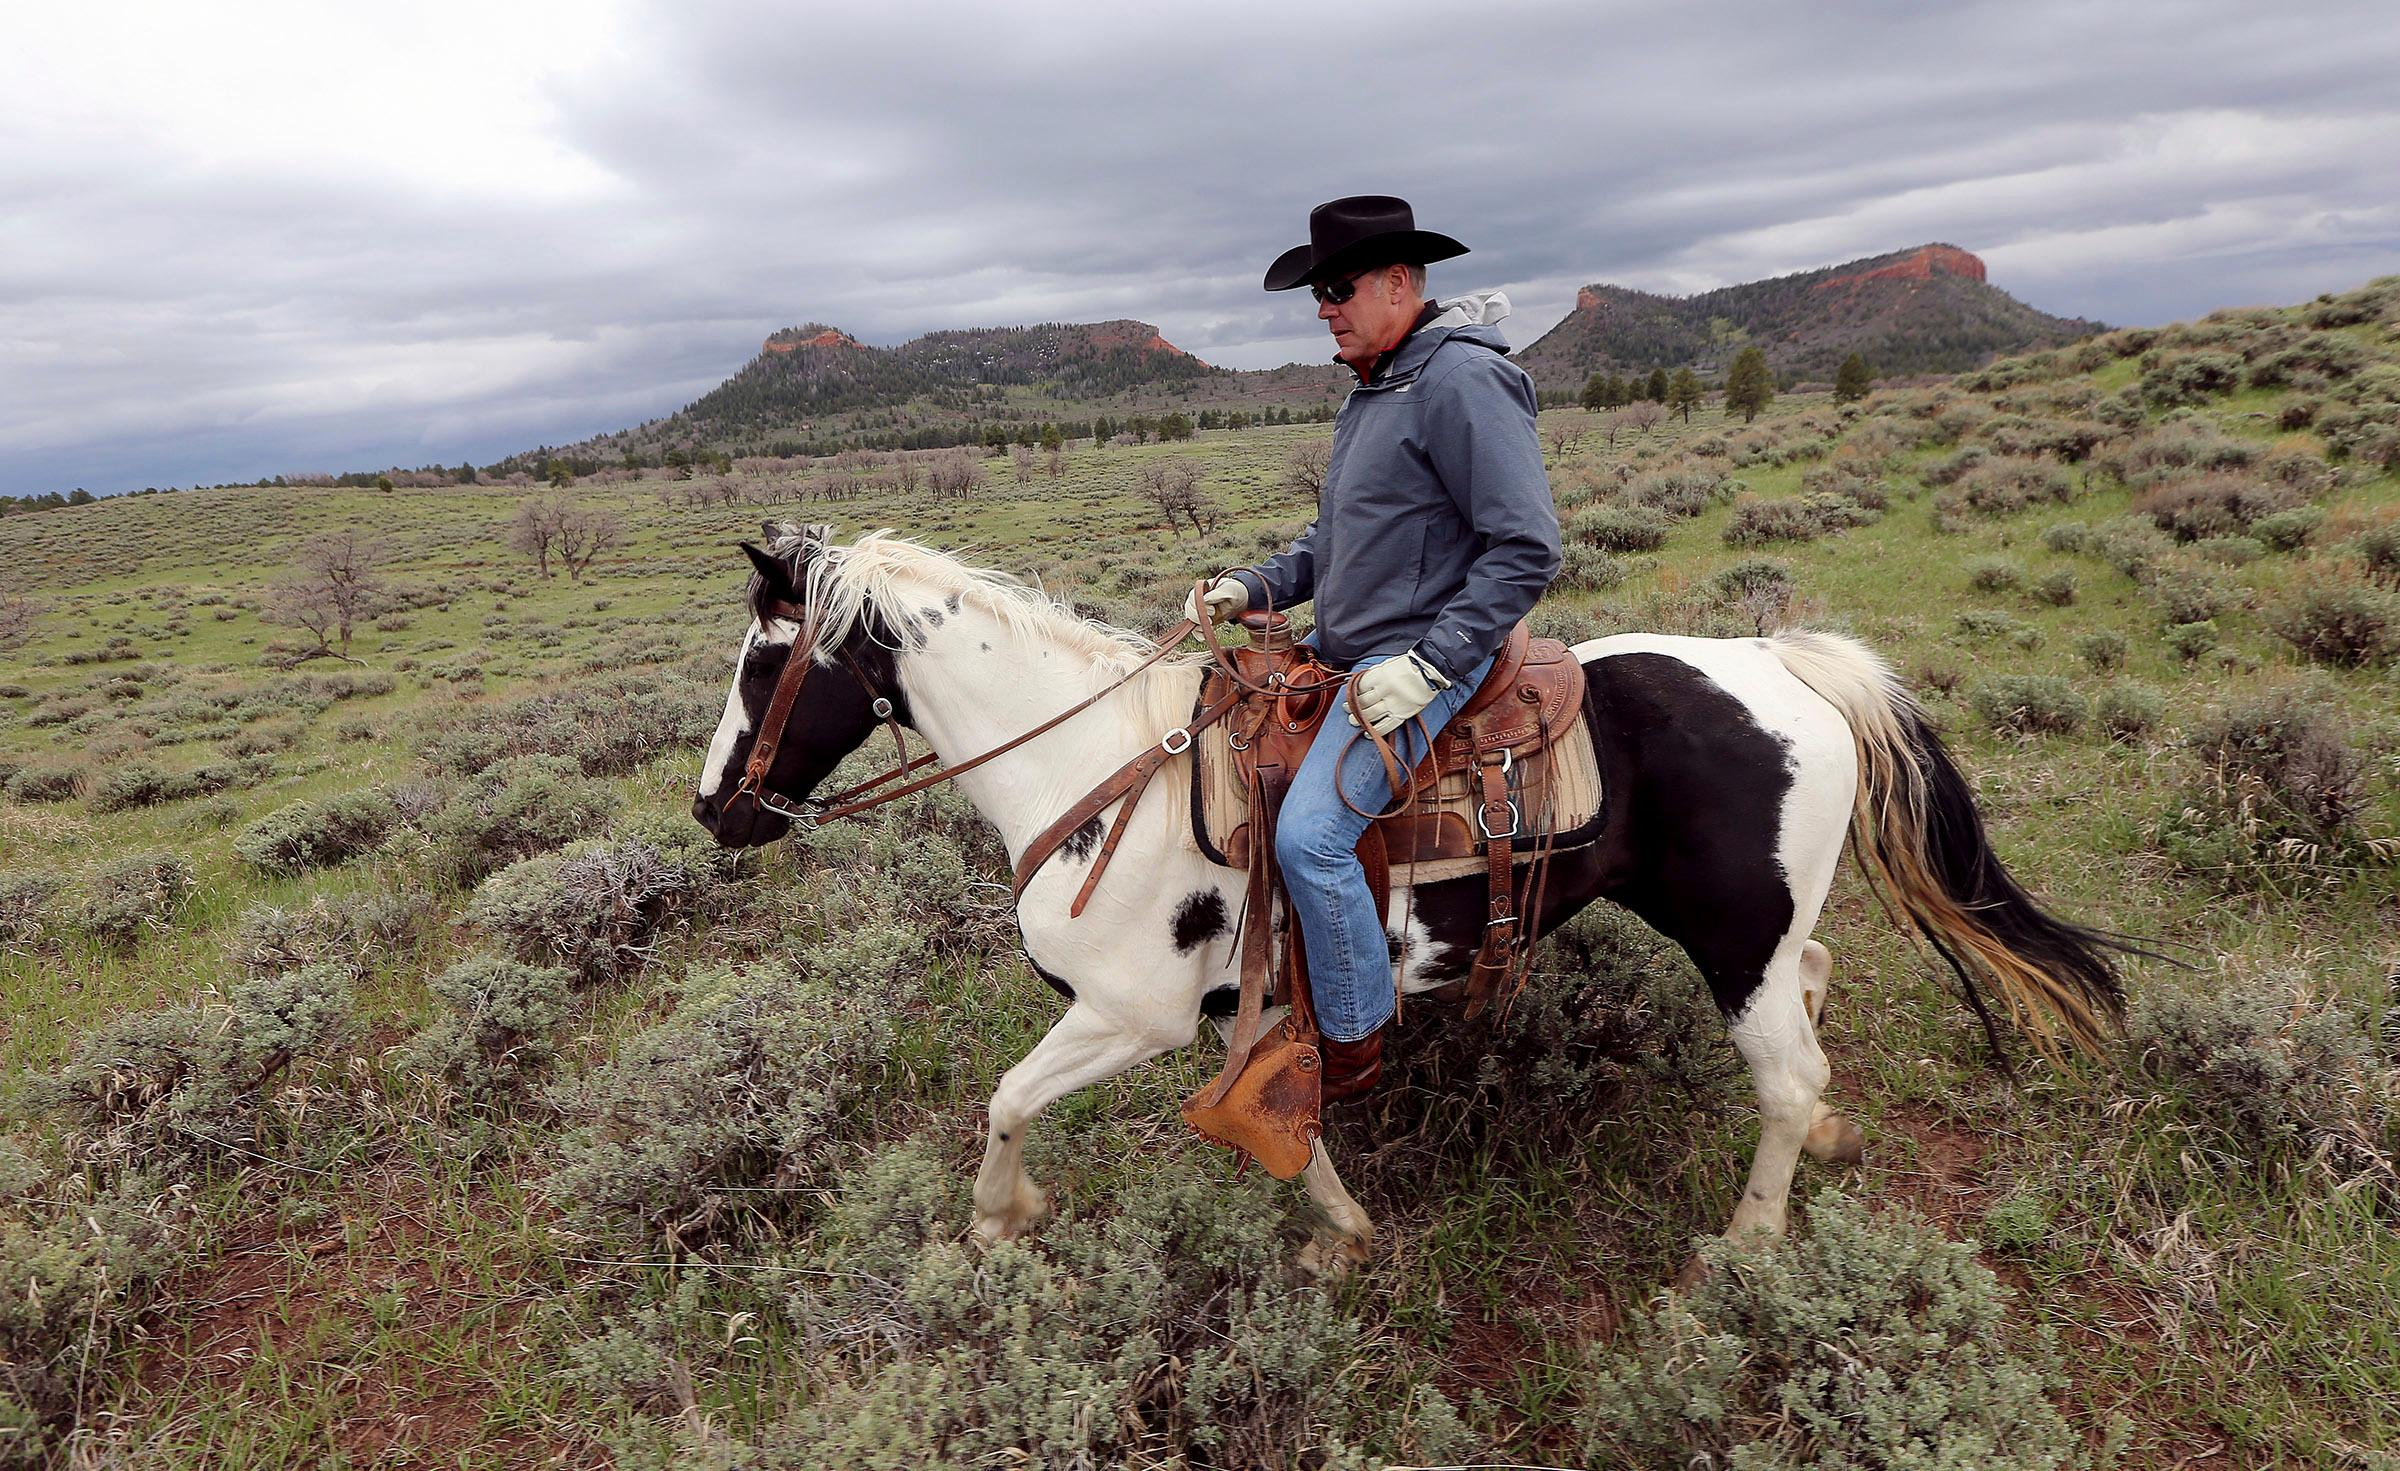 FILE - In this May 9, 2017, file photo, Interior Secretary Ryan Zinke rides a horse in the new Bears Ears National Monument near Blanding, Utah. Utah has long stood out for going far beyond other Western states in trying to get back control of its federally protected lands. When President Donald Trump on Monday, Dec. 4, 2017, announces he's going to shrink two national monuments in the state, his warm welcome will stand out in a region that is normally protective of its parks and monuments. (Scott G Winterton/The Deseret News via AP, File)